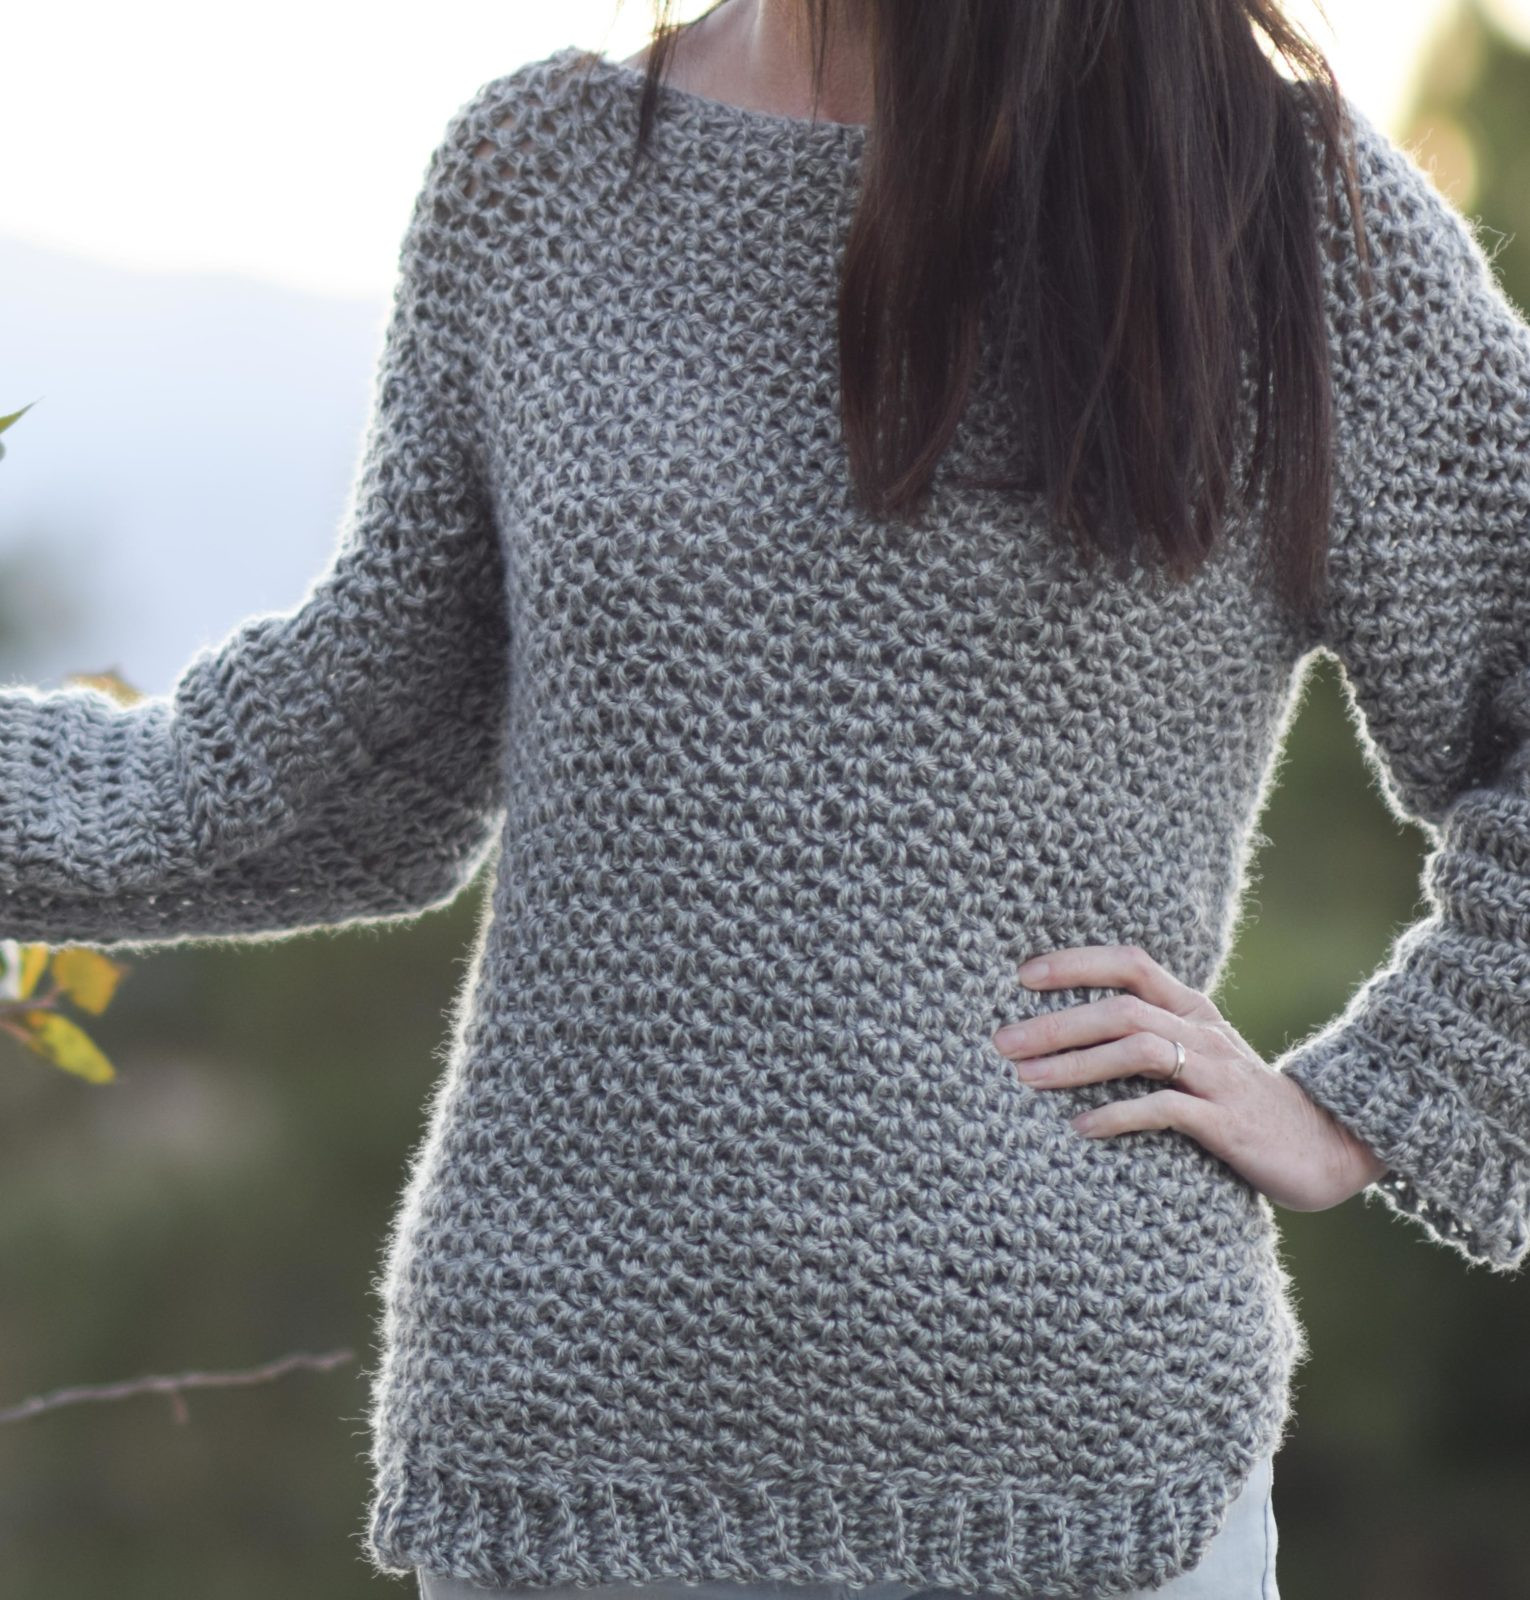 Sweater Crochet Patterns Elegant How to Make An Easy Crocheted Sweater Knit Like – Mama Of Amazing 49 Pictures Sweater Crochet Patterns